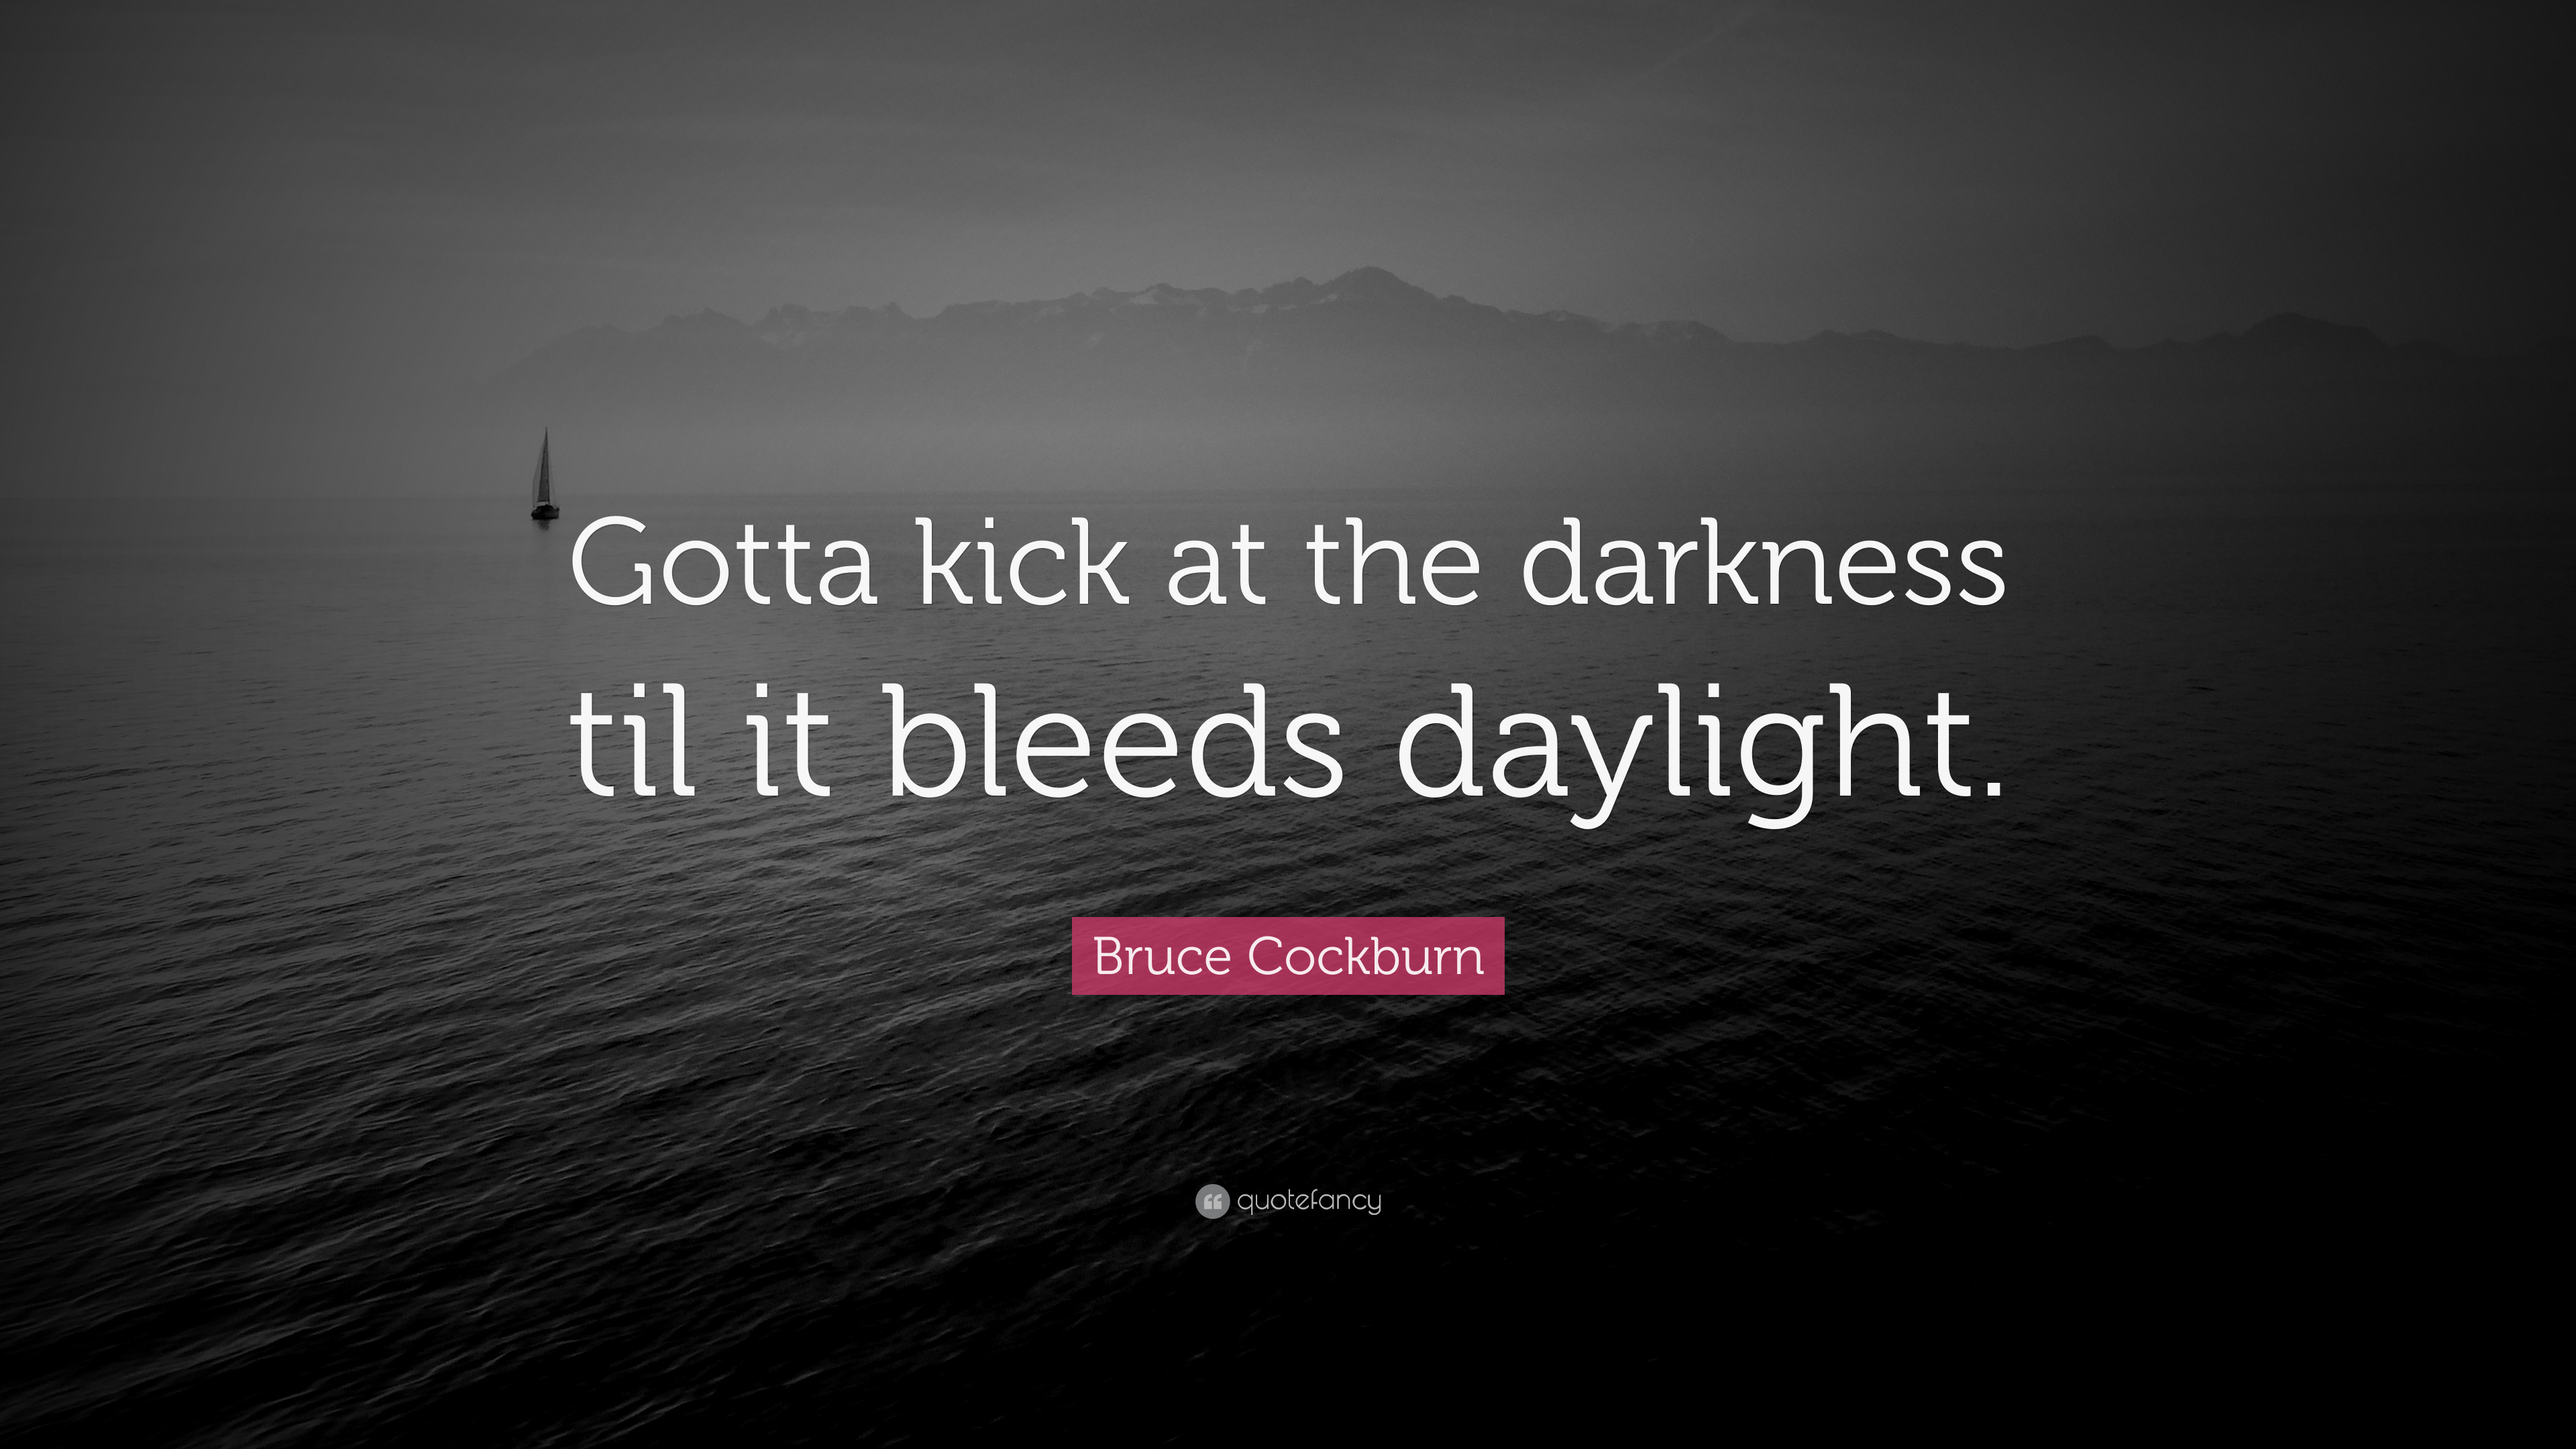 Kick at the darkness til it bleeds daylight